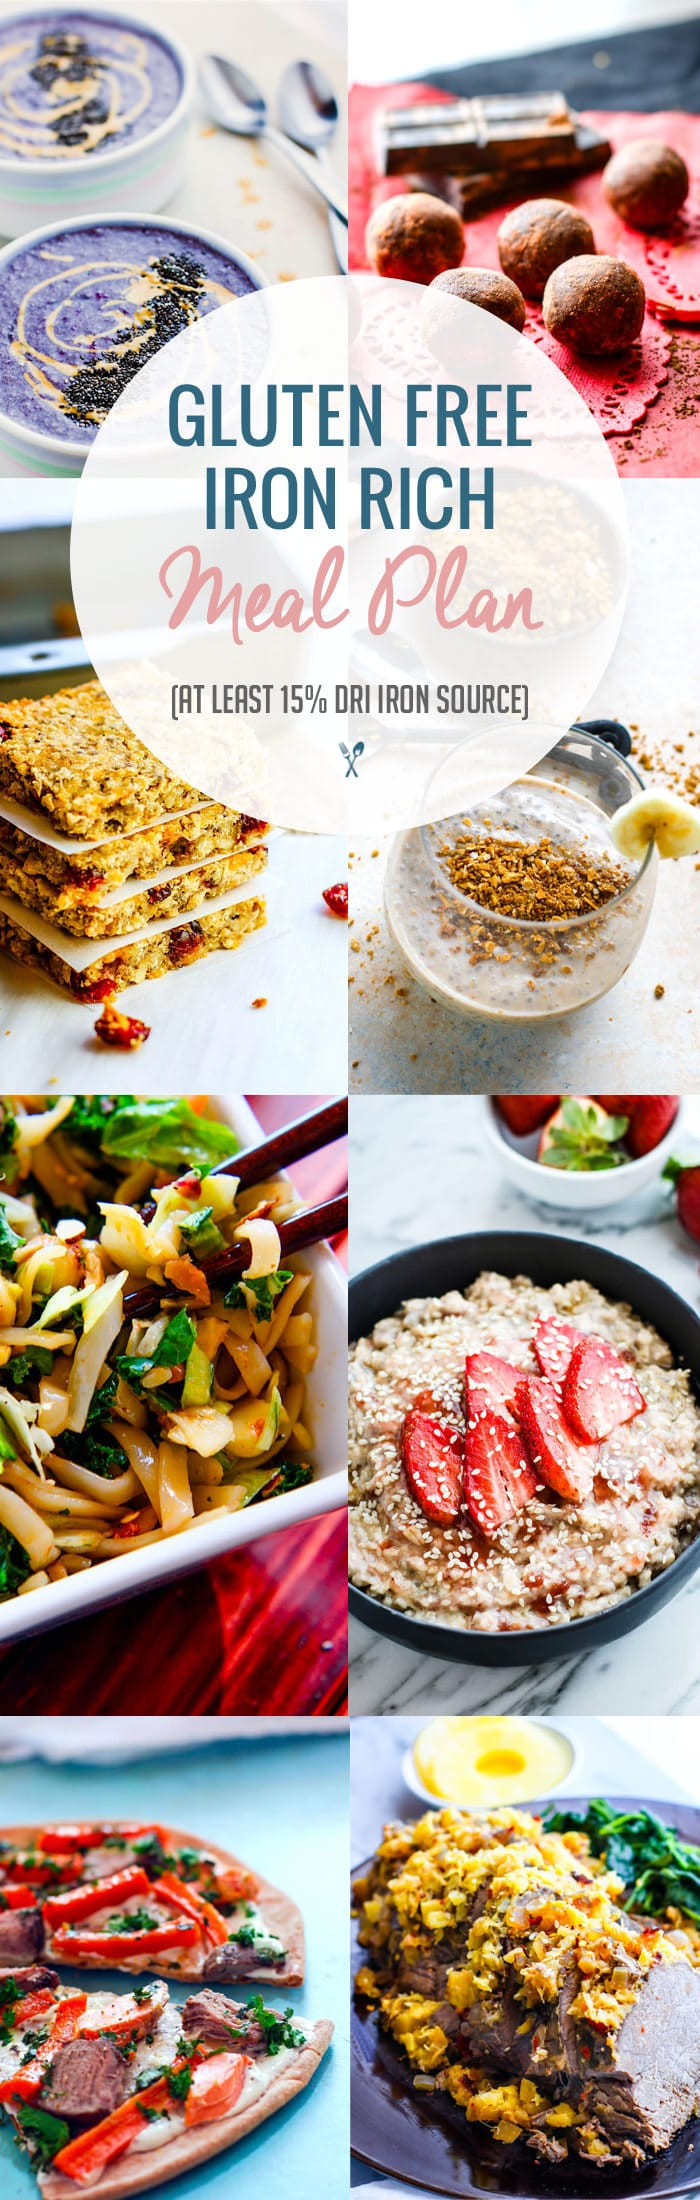 Iron Rich Healthy Gluten Free Meal Plan Ideas! Snacks and Meals with at Least 15% DRI Iron and loaded with Vitamin C to help with absorption. Easy gluten free meal plan ideas to boost your health!